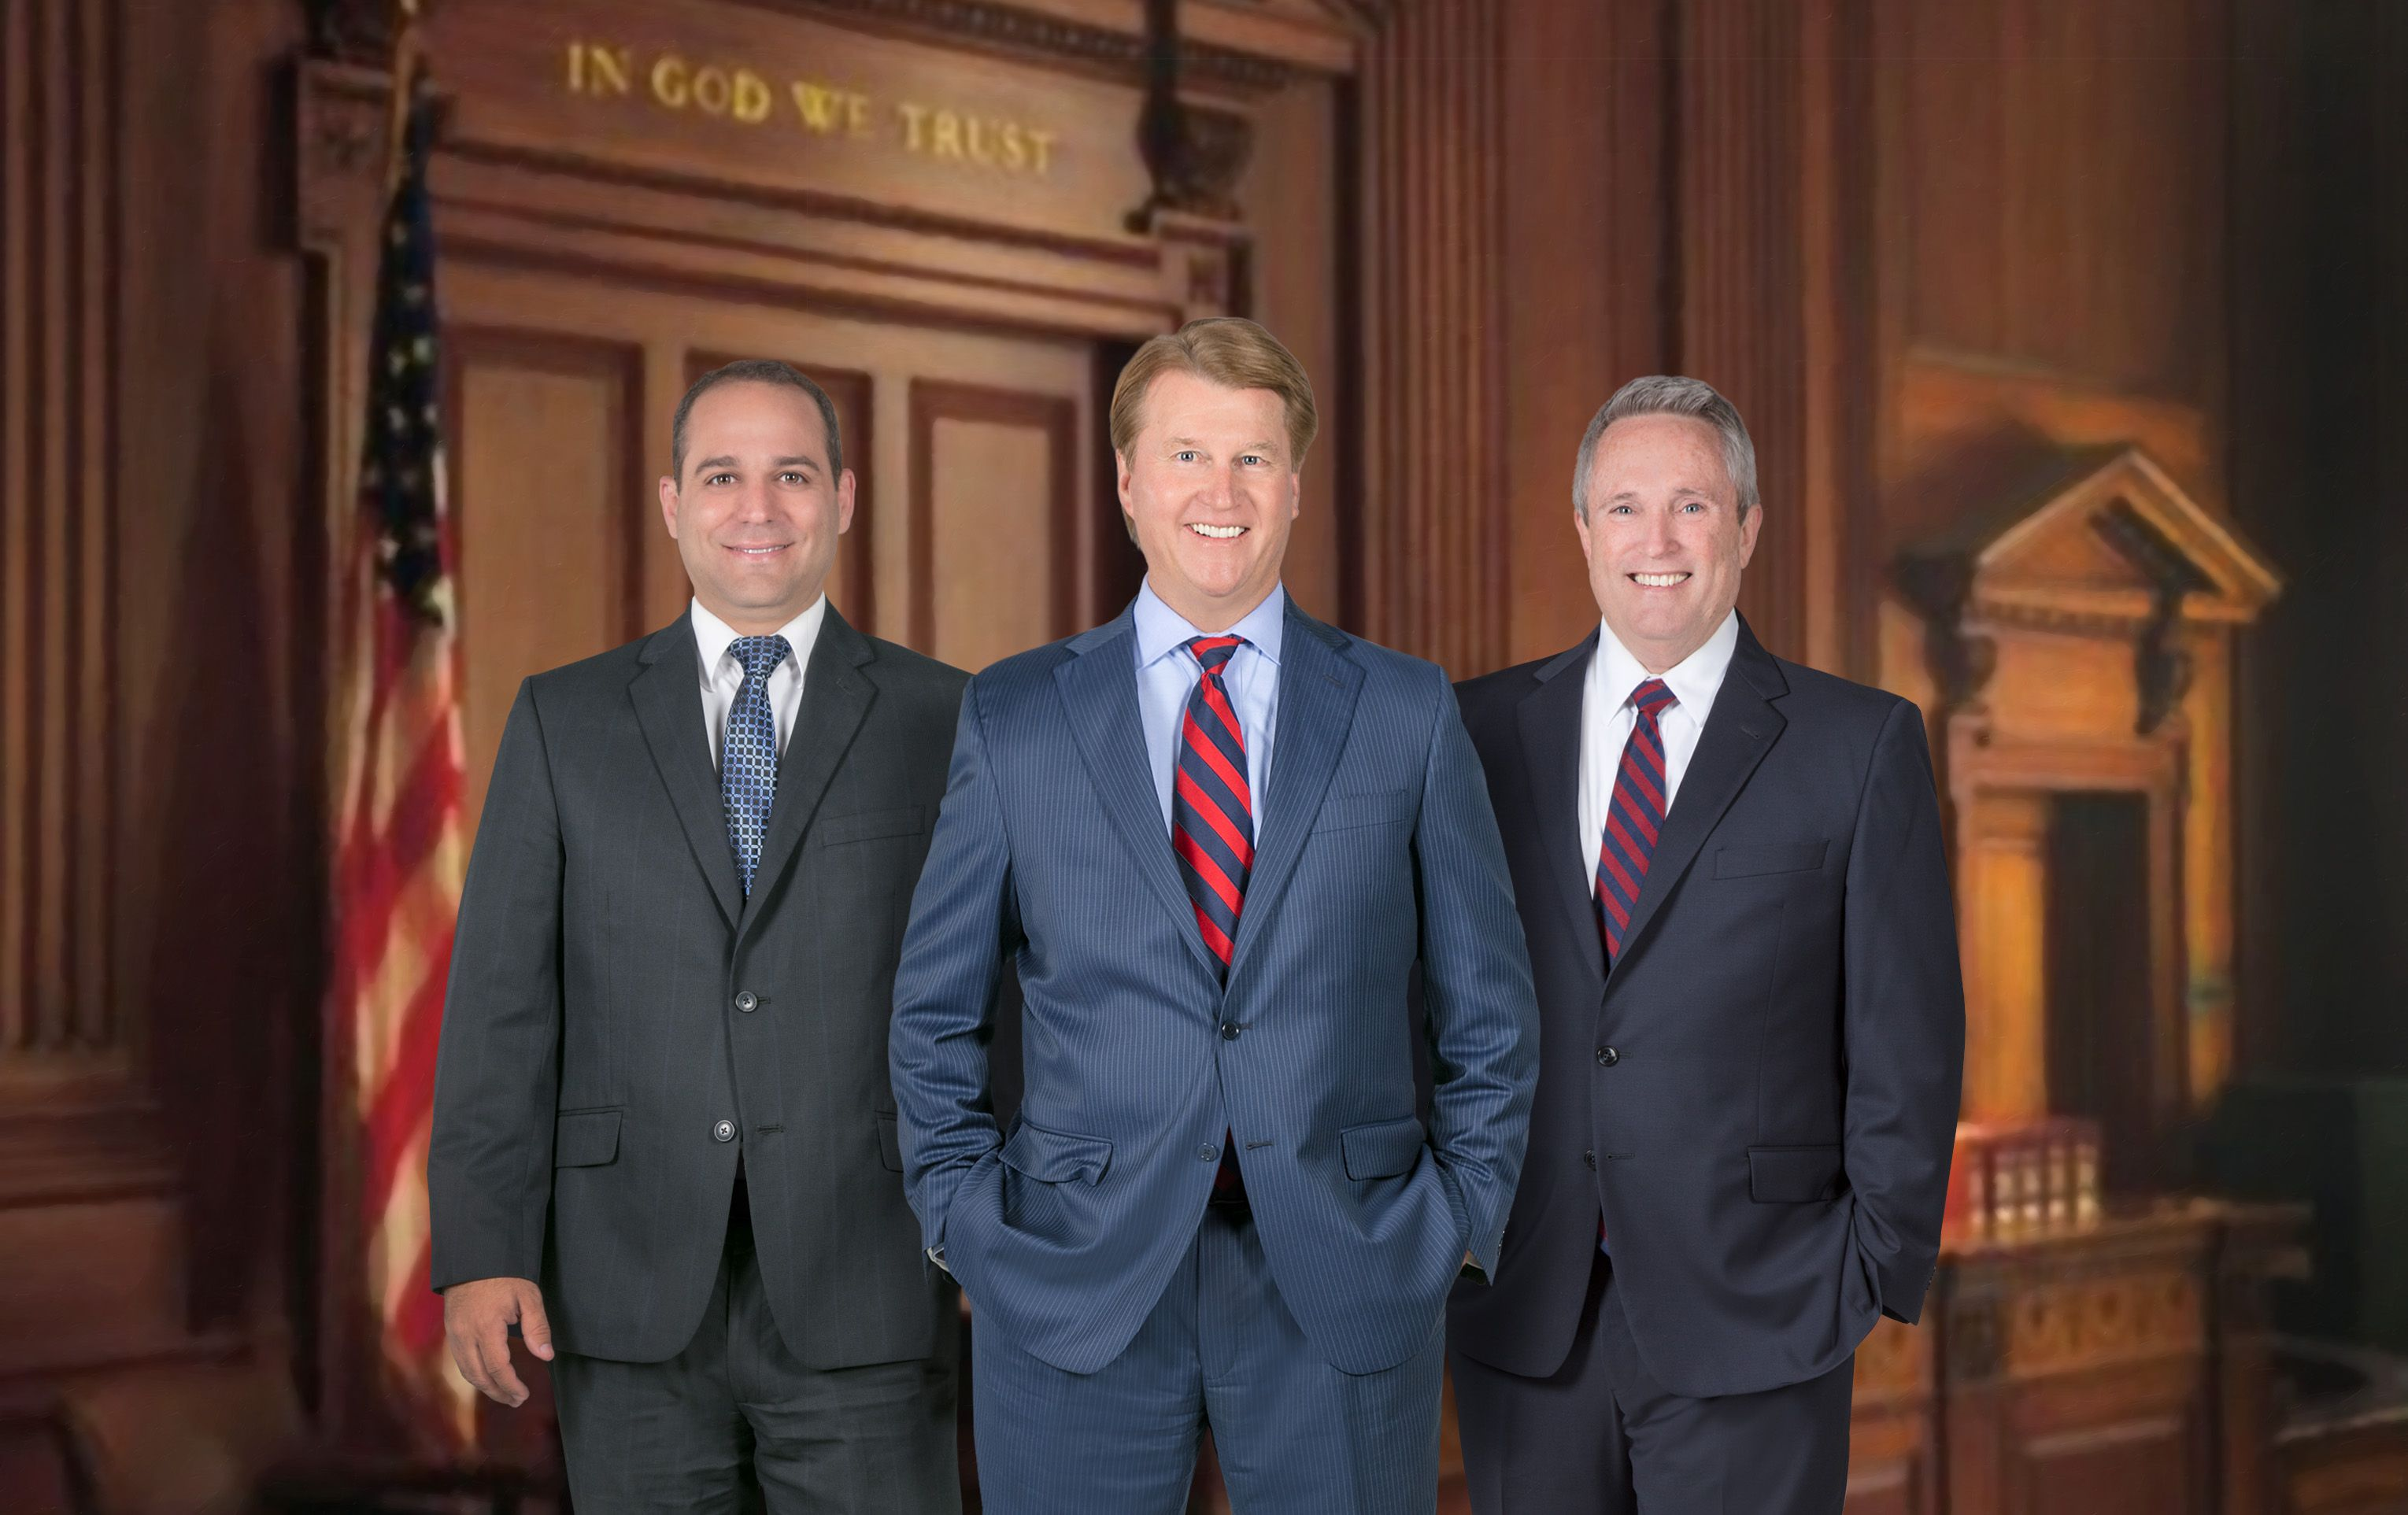 Attorneys at Moody Law